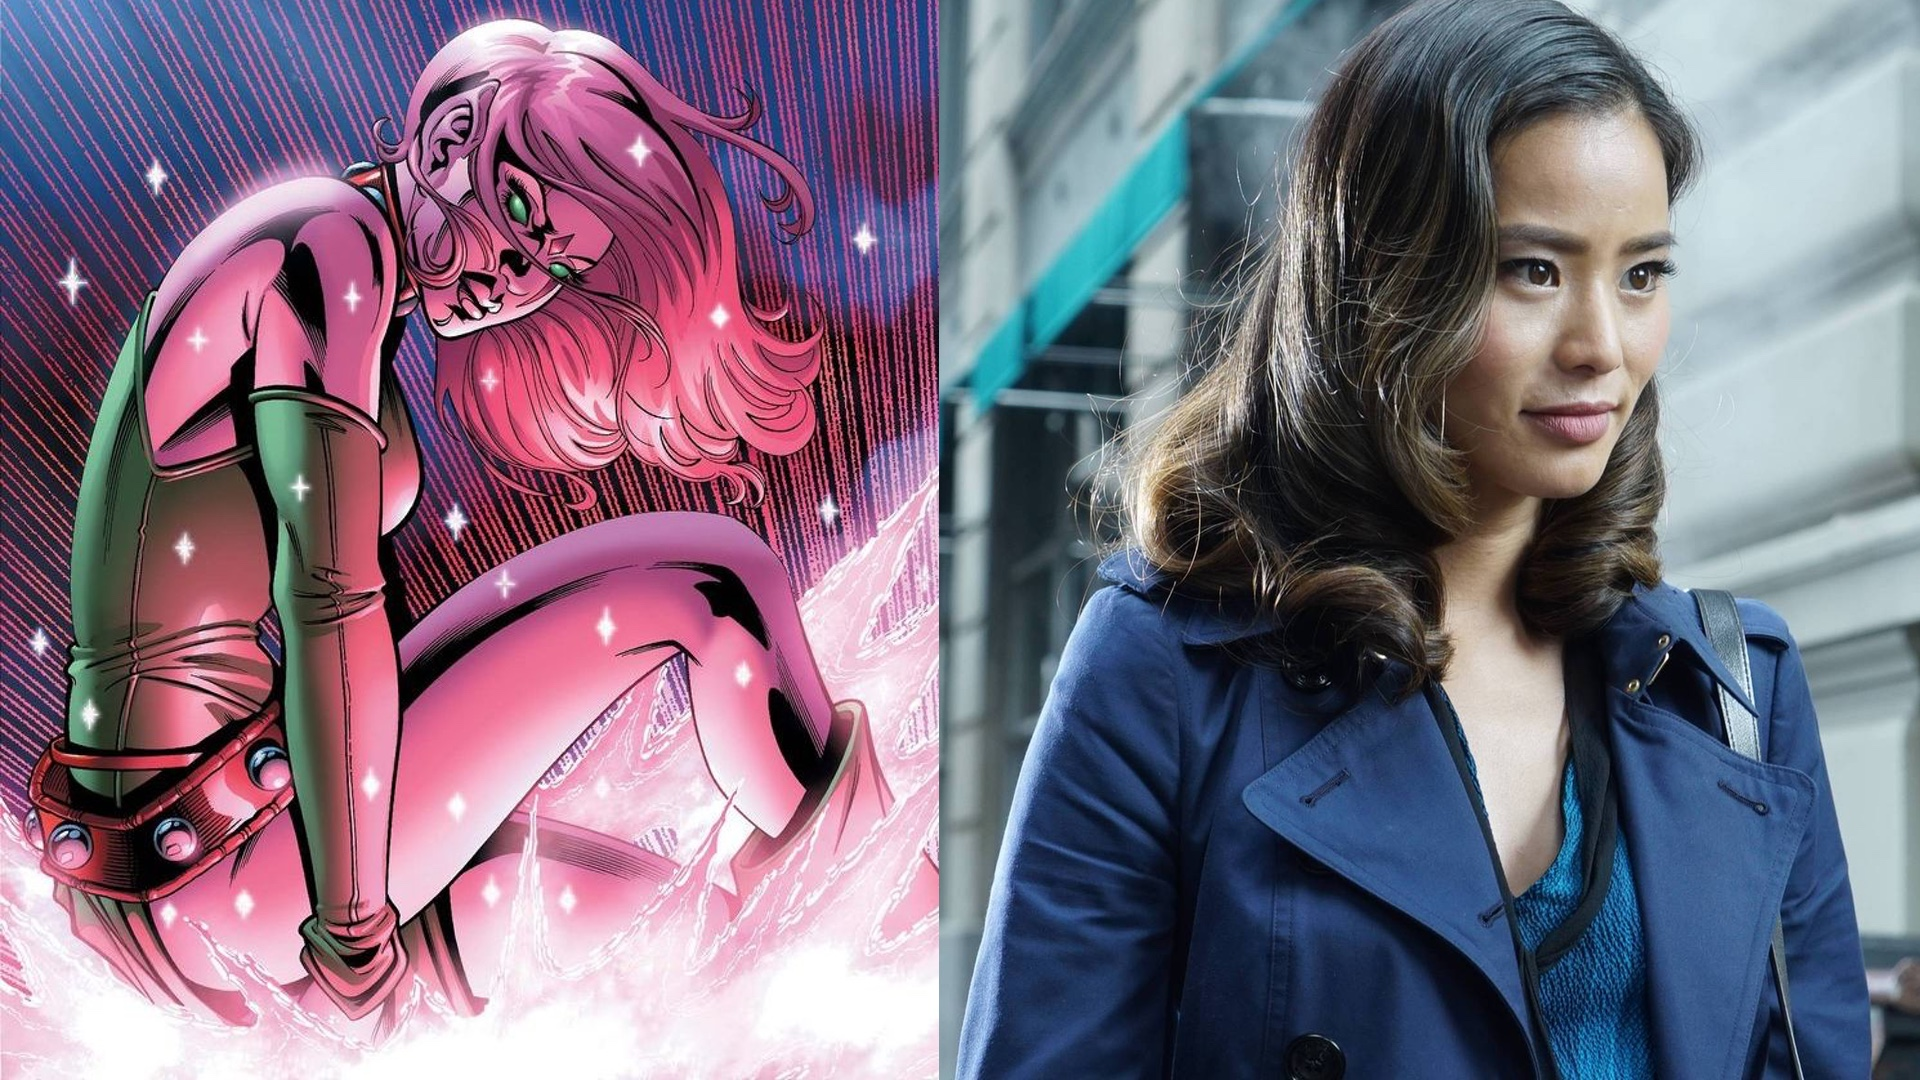 jamie chung cast in the role of blink in bryan singer's x-men tv